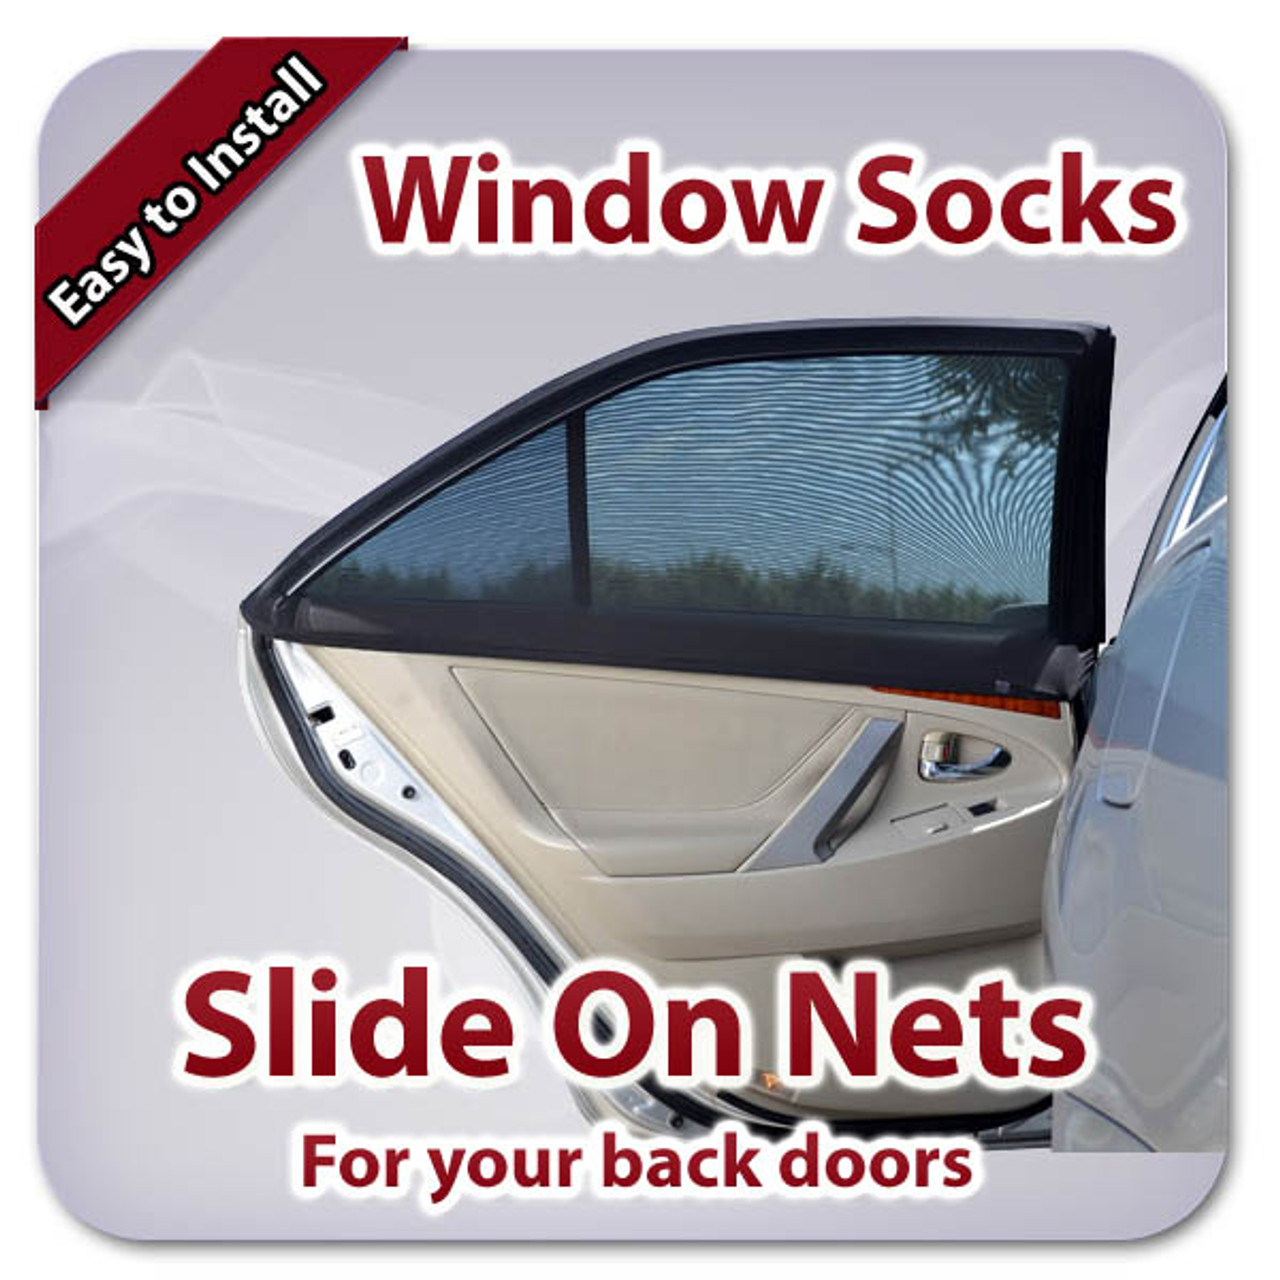 Universal Window Socks Slip On Netting for Both Back Doors